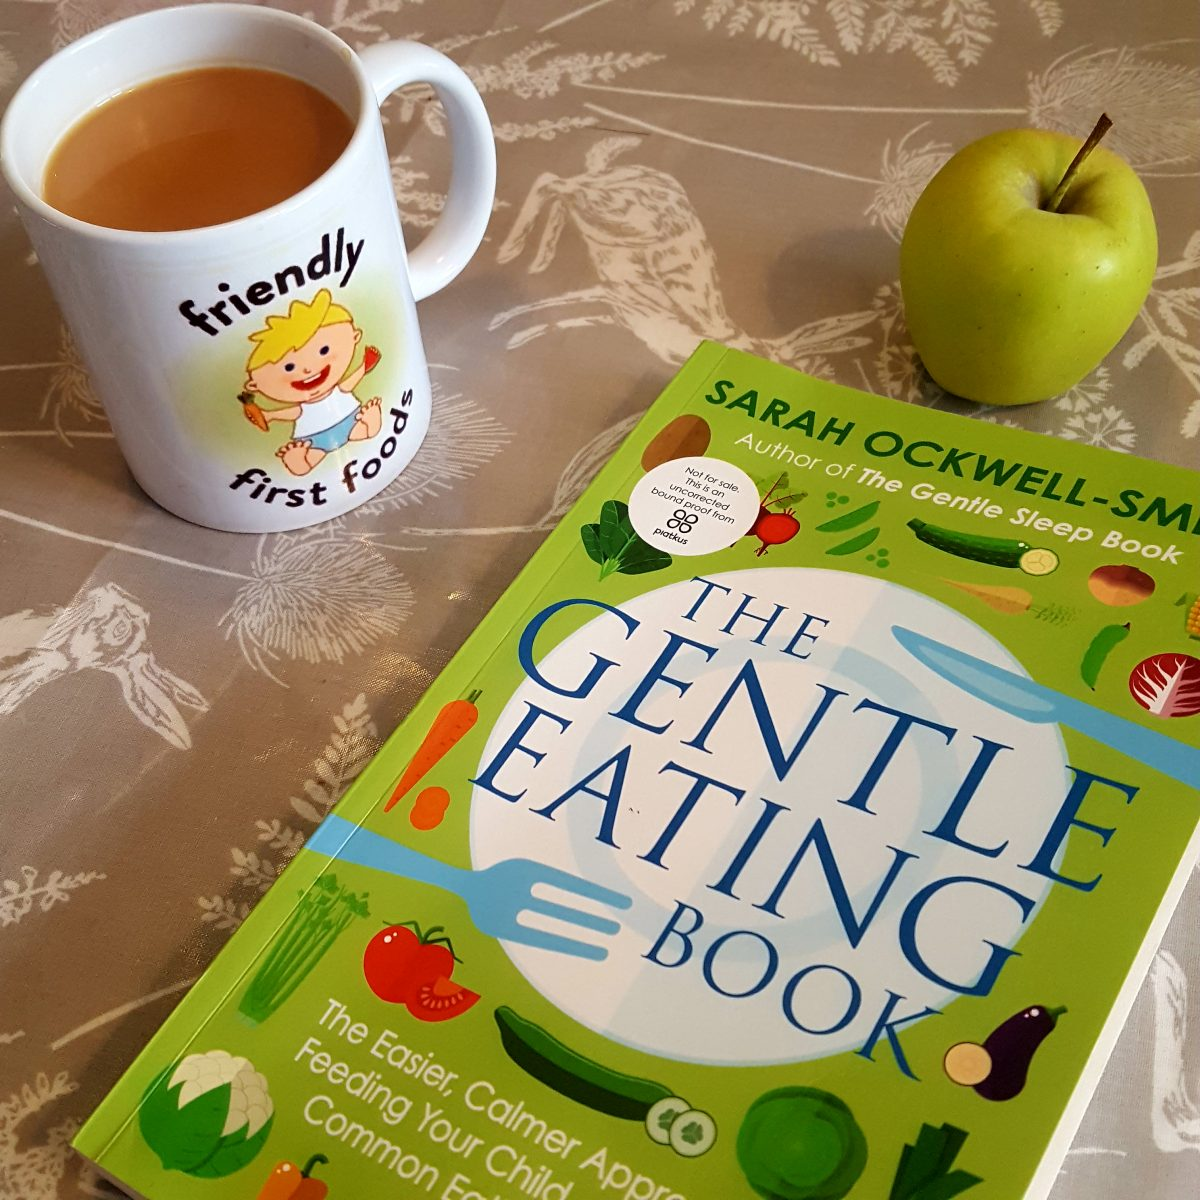 The Gentle Eating Guide Review and Giveaway